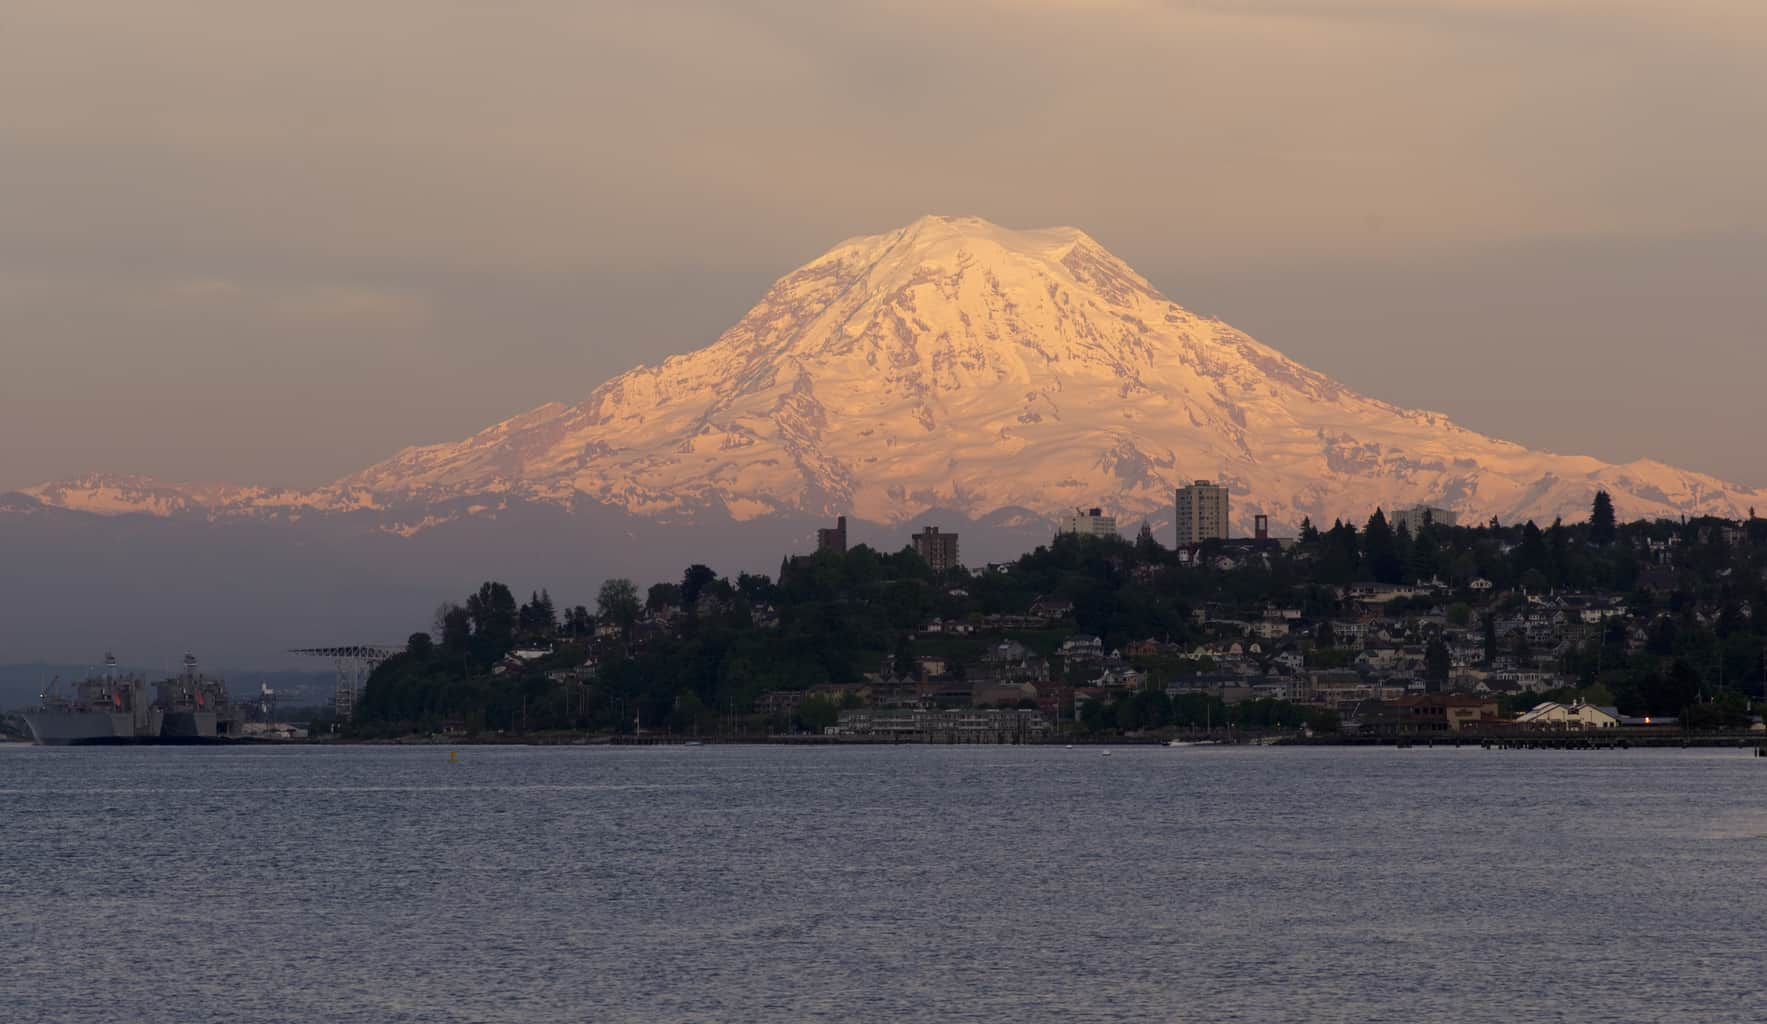 Mount Rainier rises over the Puget Sound in Tacoma